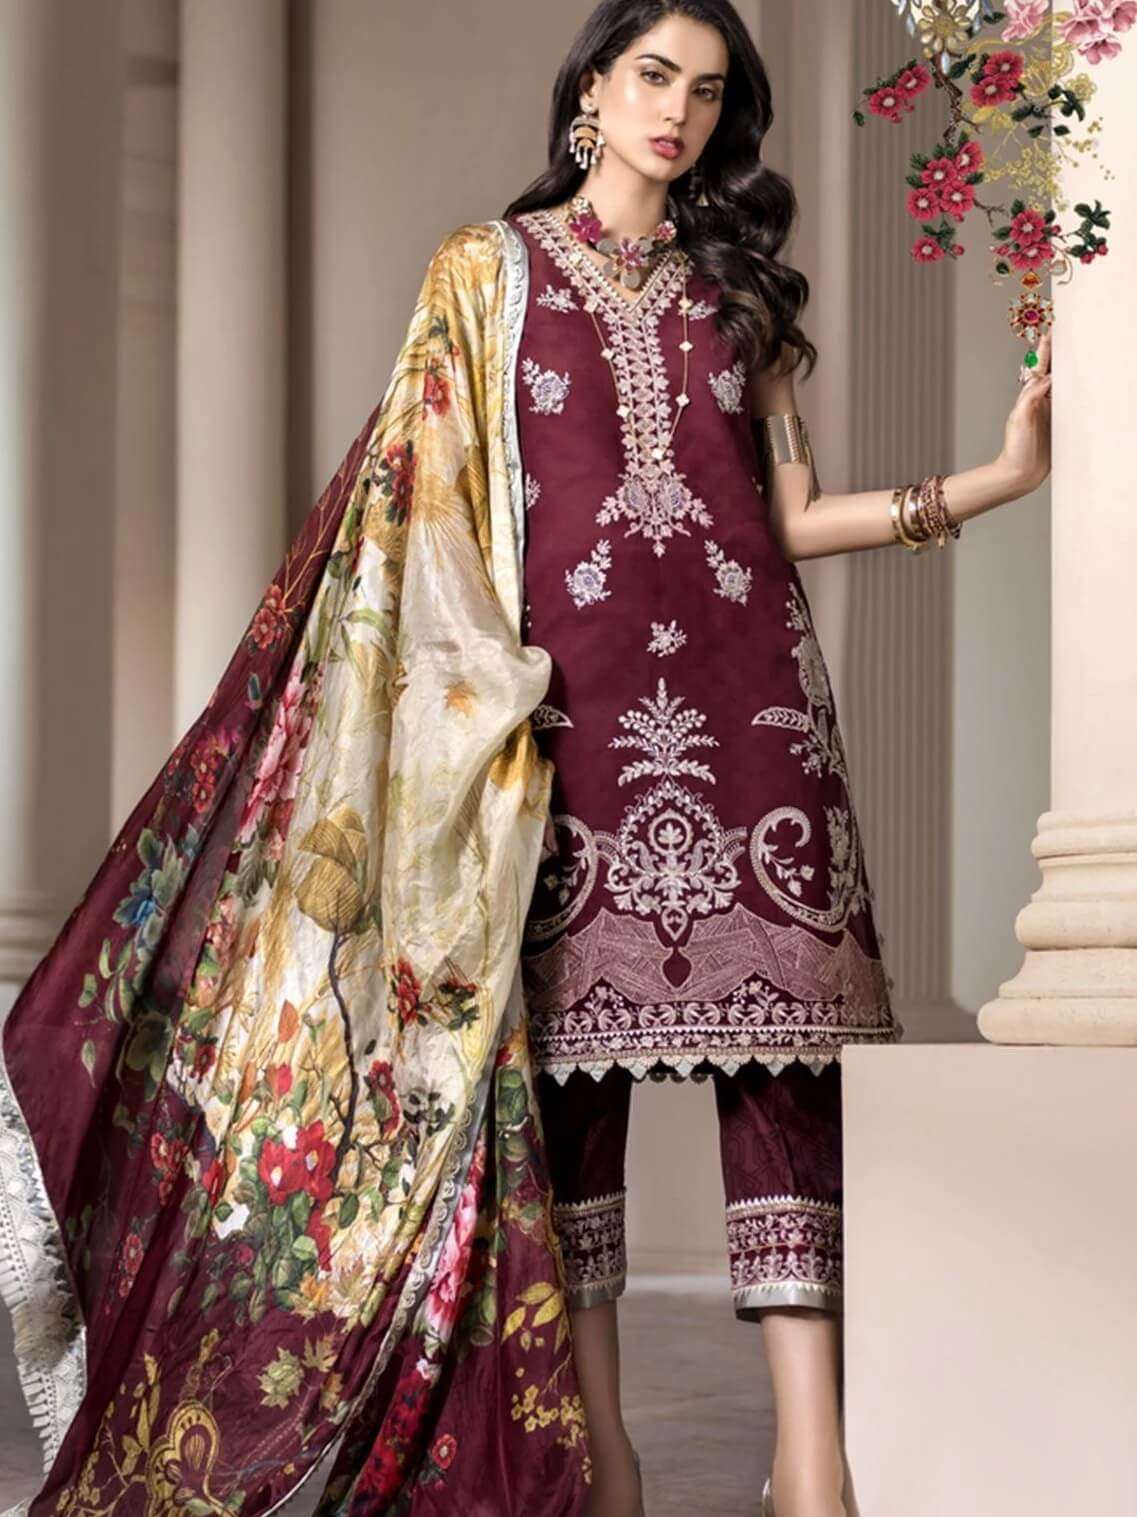 Noor By Saadia Asad Luxury Lawn 2020 Embroidered 3PC Suit D-08B - FaisalFabrics.pk